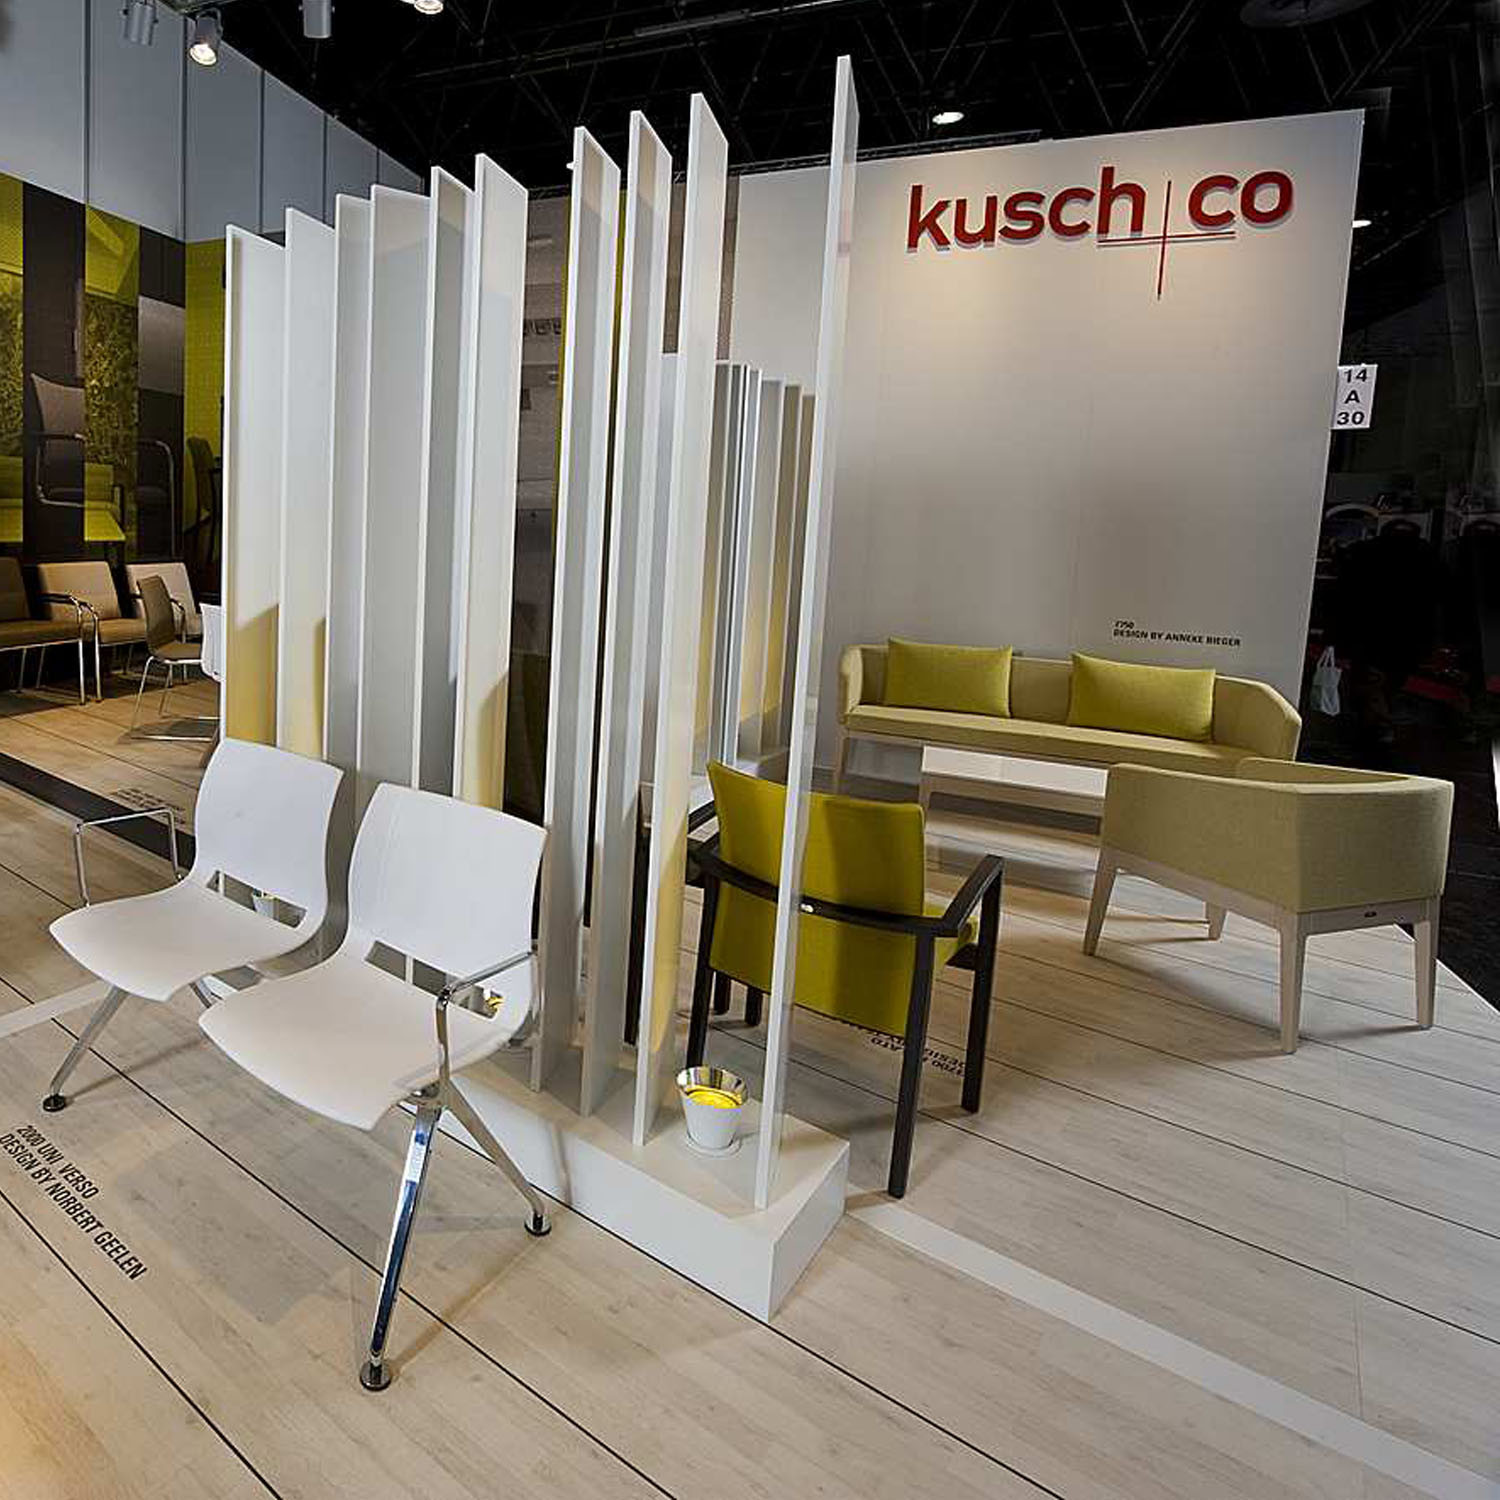 3700 Palato Seating ar Kusch+Co's Showroom